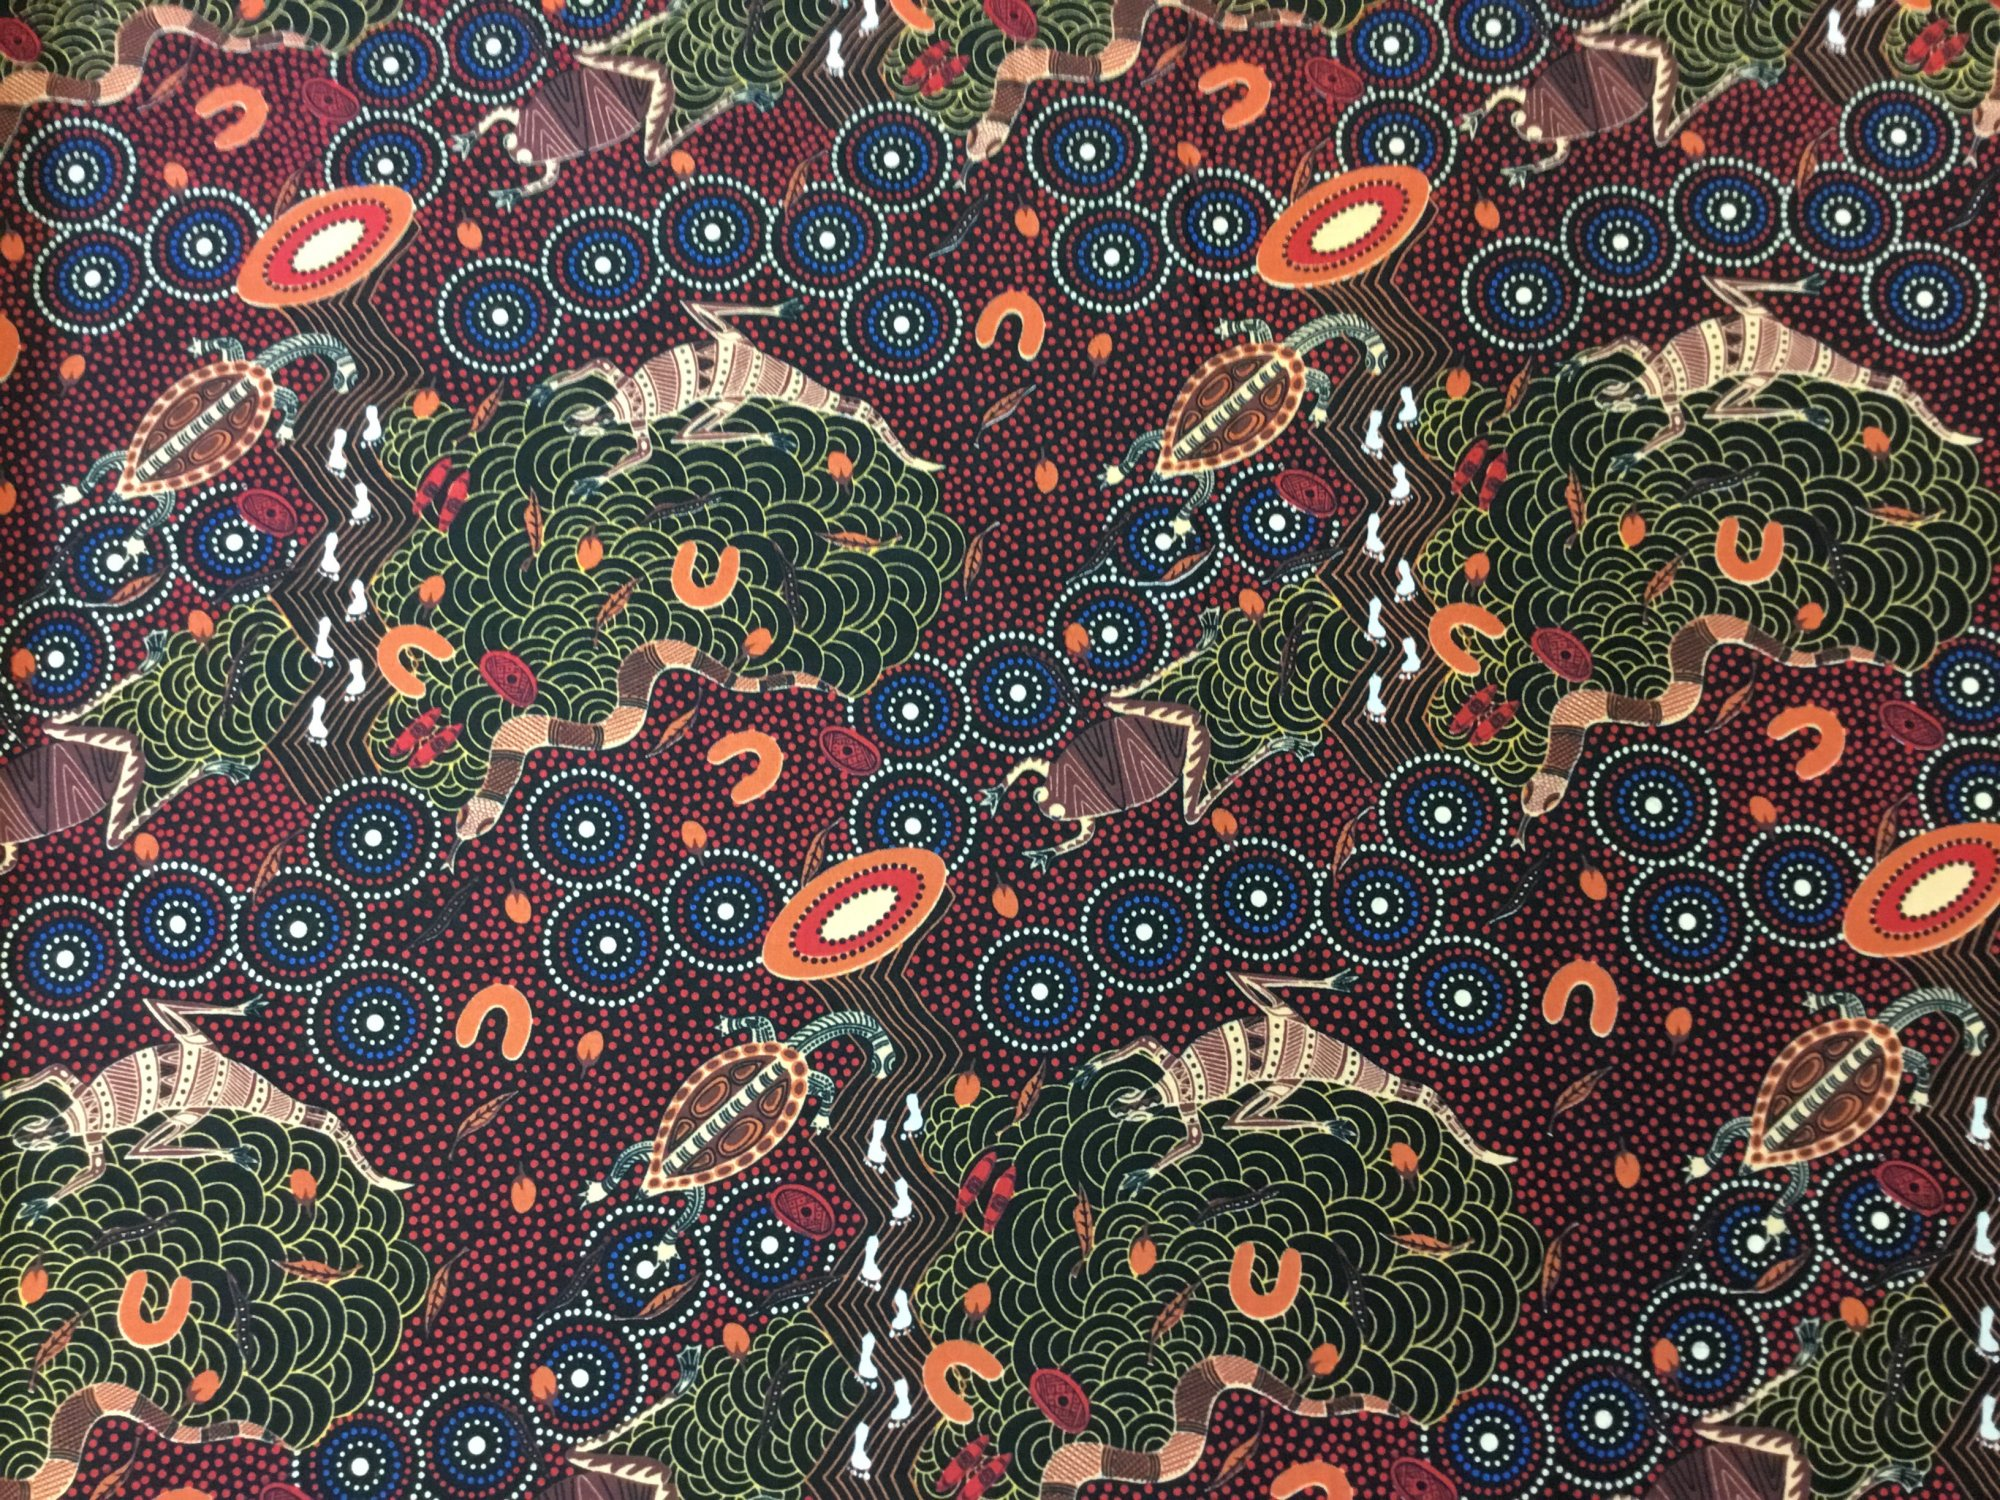 AROUND WATERHOLE RED AWR by M&S Textiles